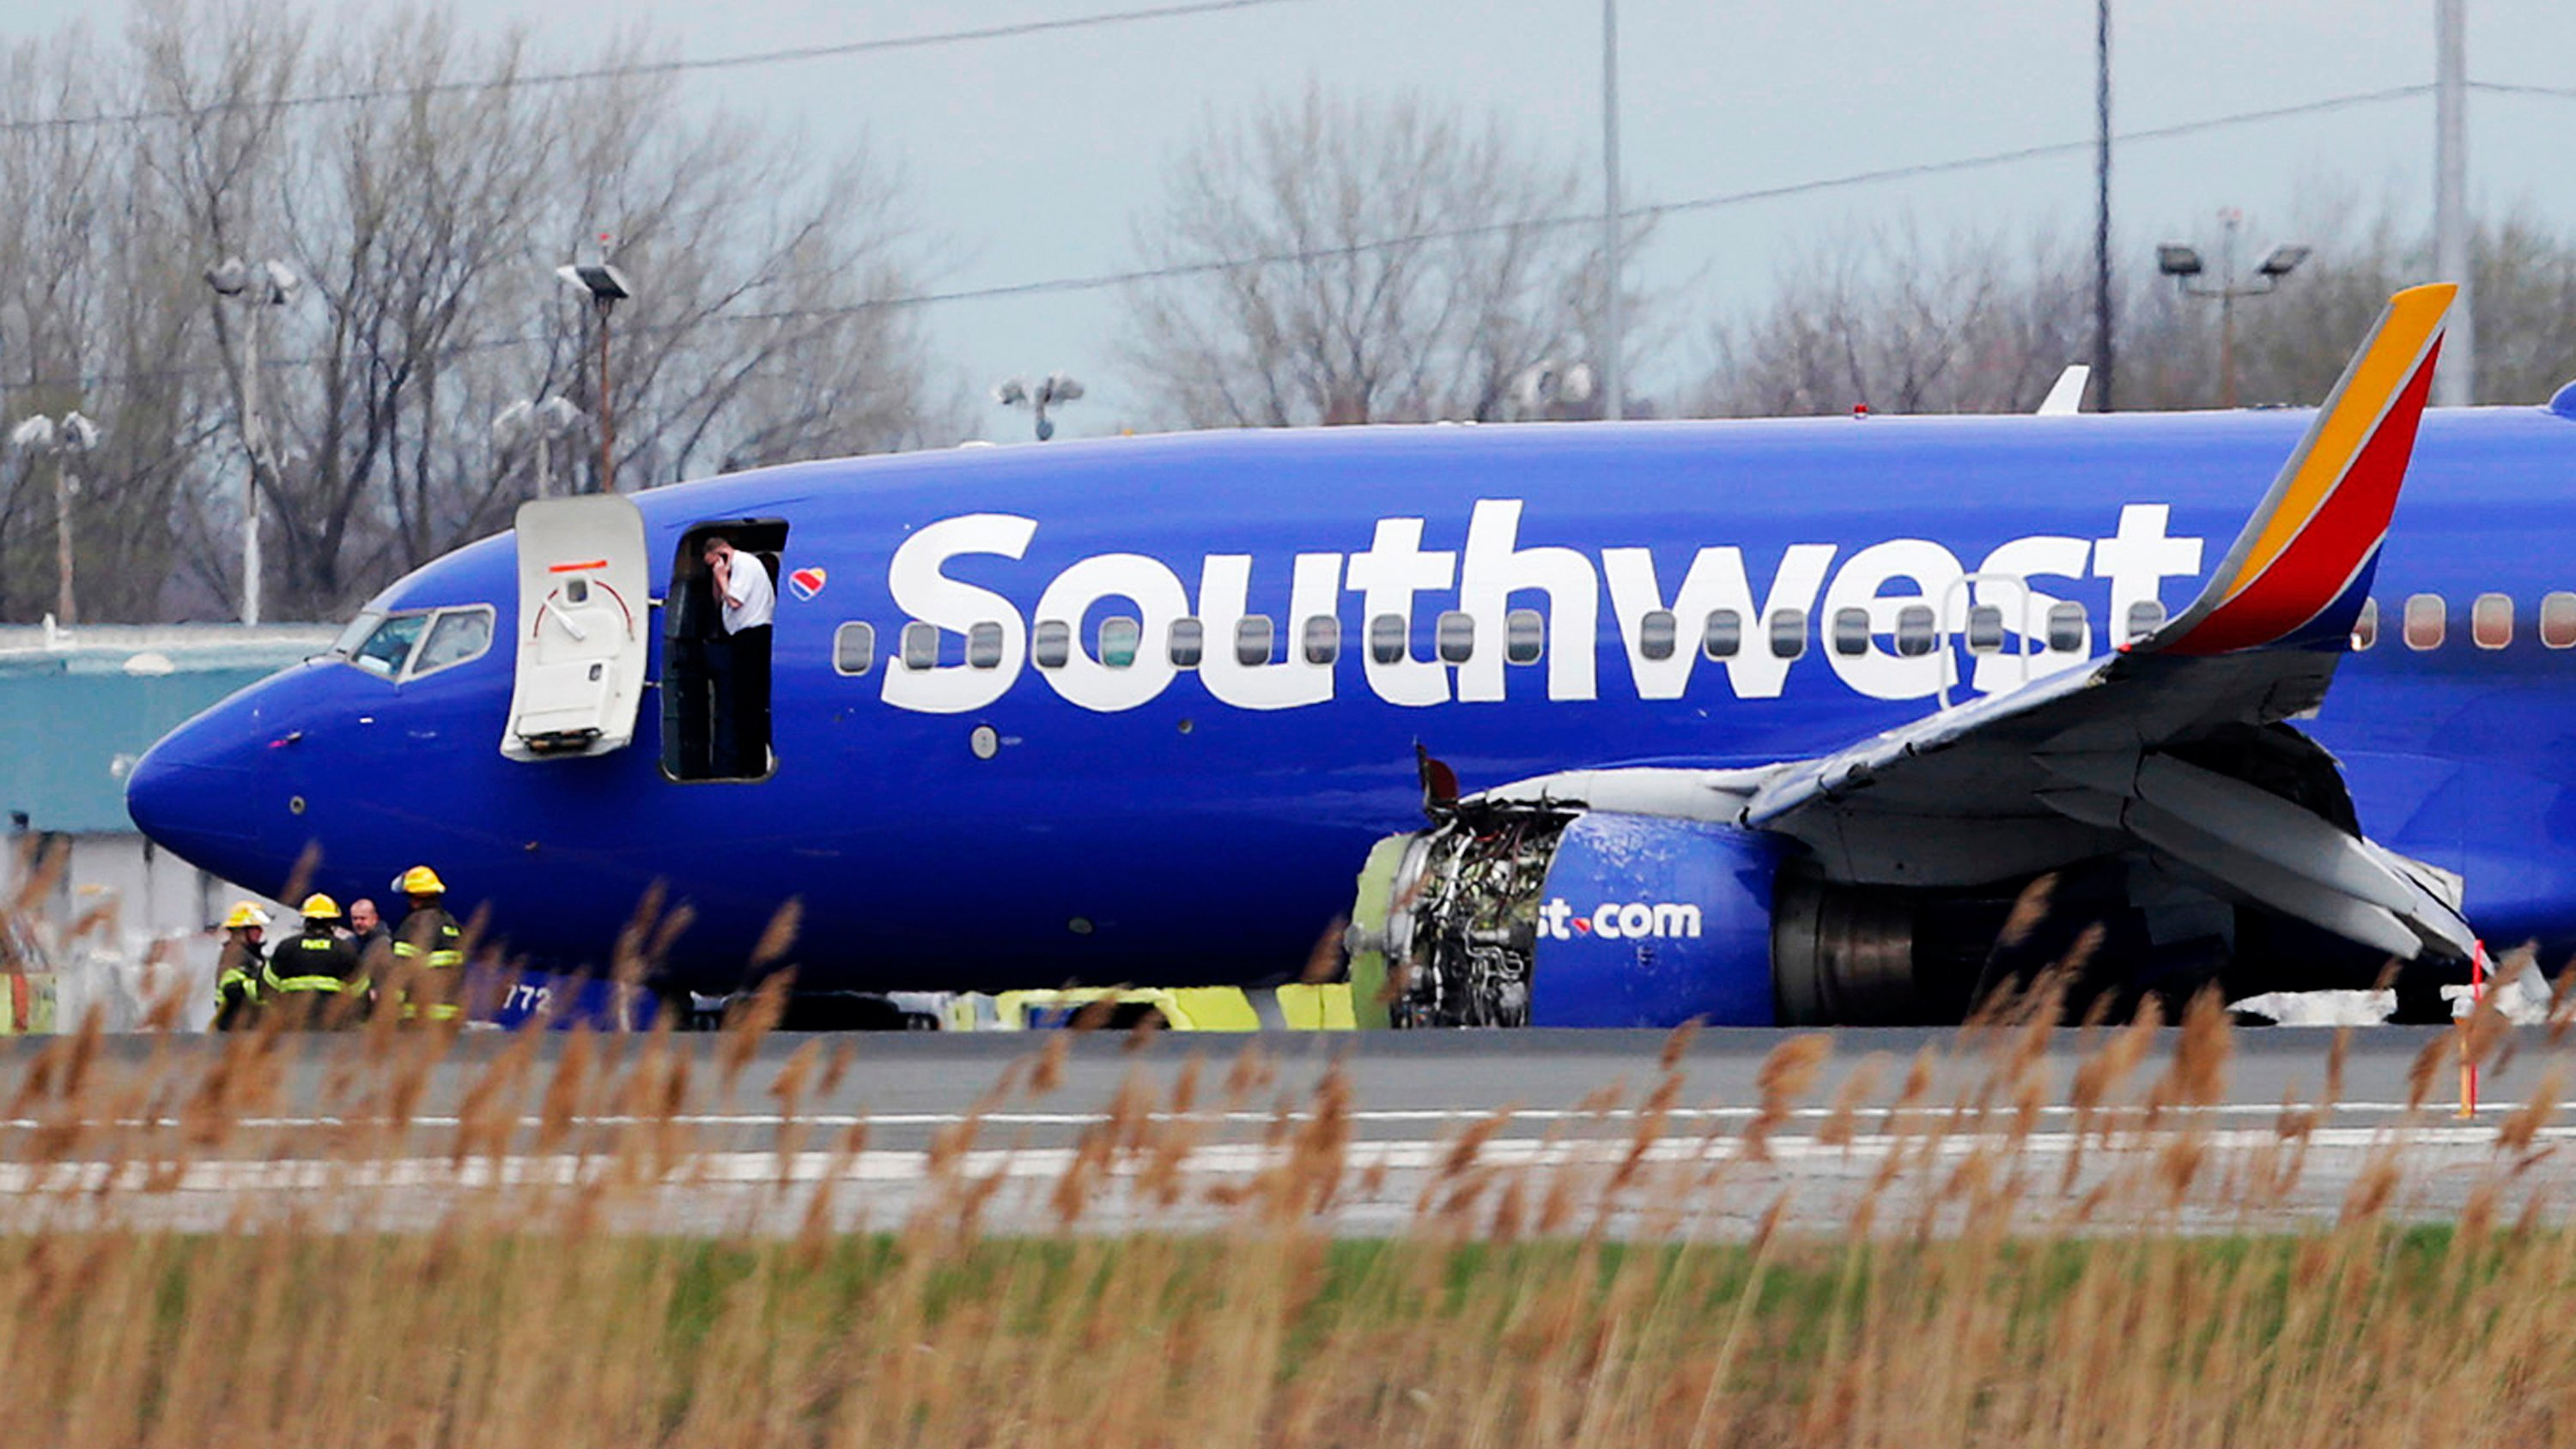 Southwest sends letter, $5K check, $1K voucher to Flight 1380 passengers